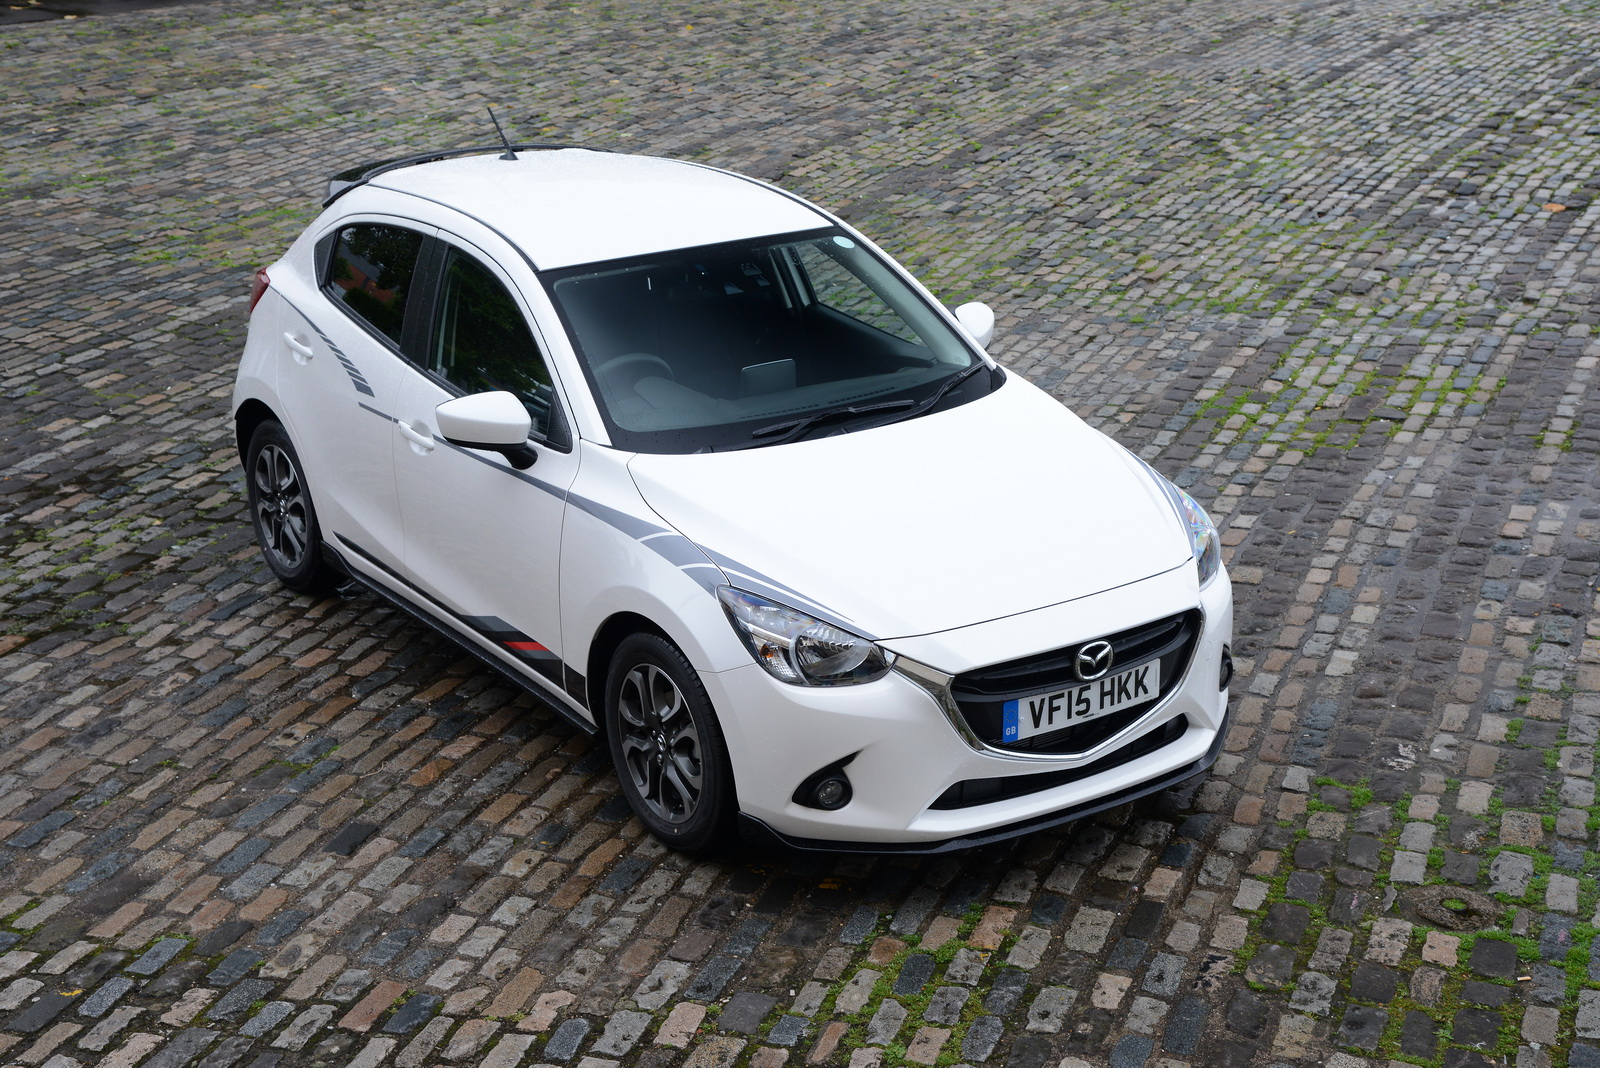 mazda 2 gains sport black edition in the uk carscoops. Black Bedroom Furniture Sets. Home Design Ideas